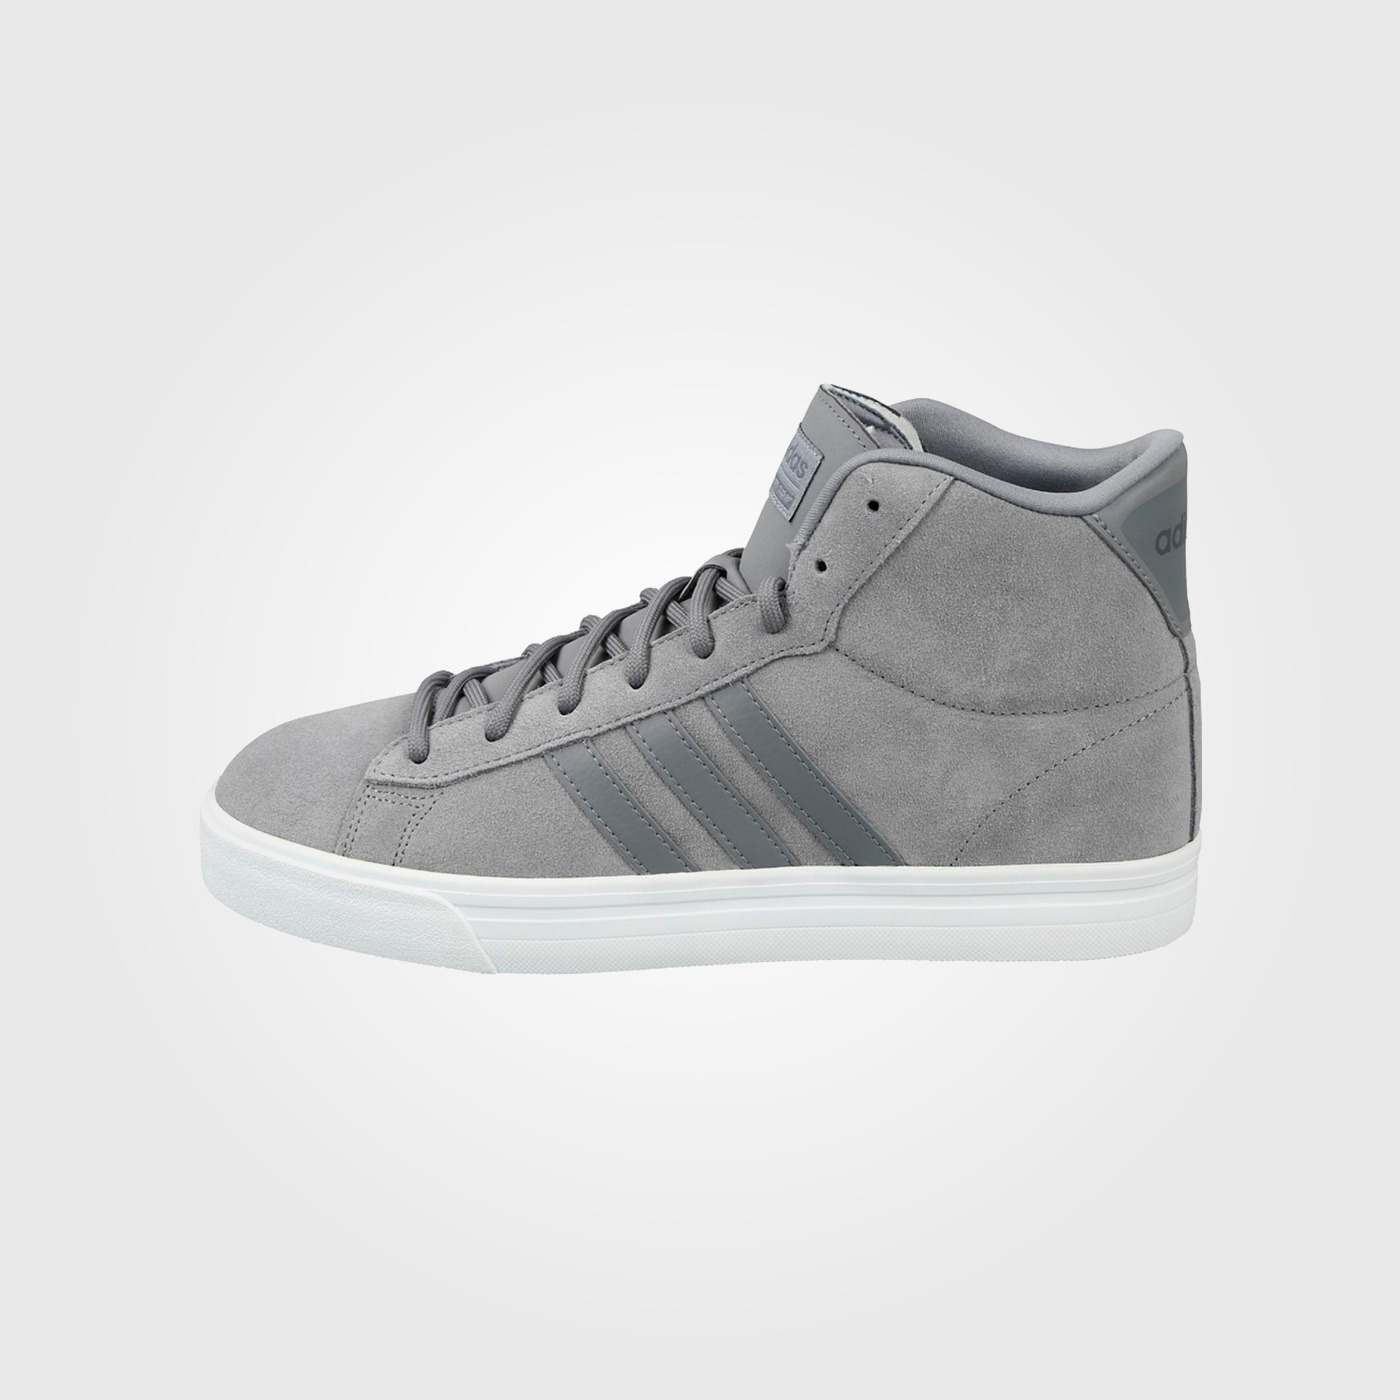 29d06218c110 Кроссовки Adidas Cloudfoam Super Daily Mid Gray   Giga